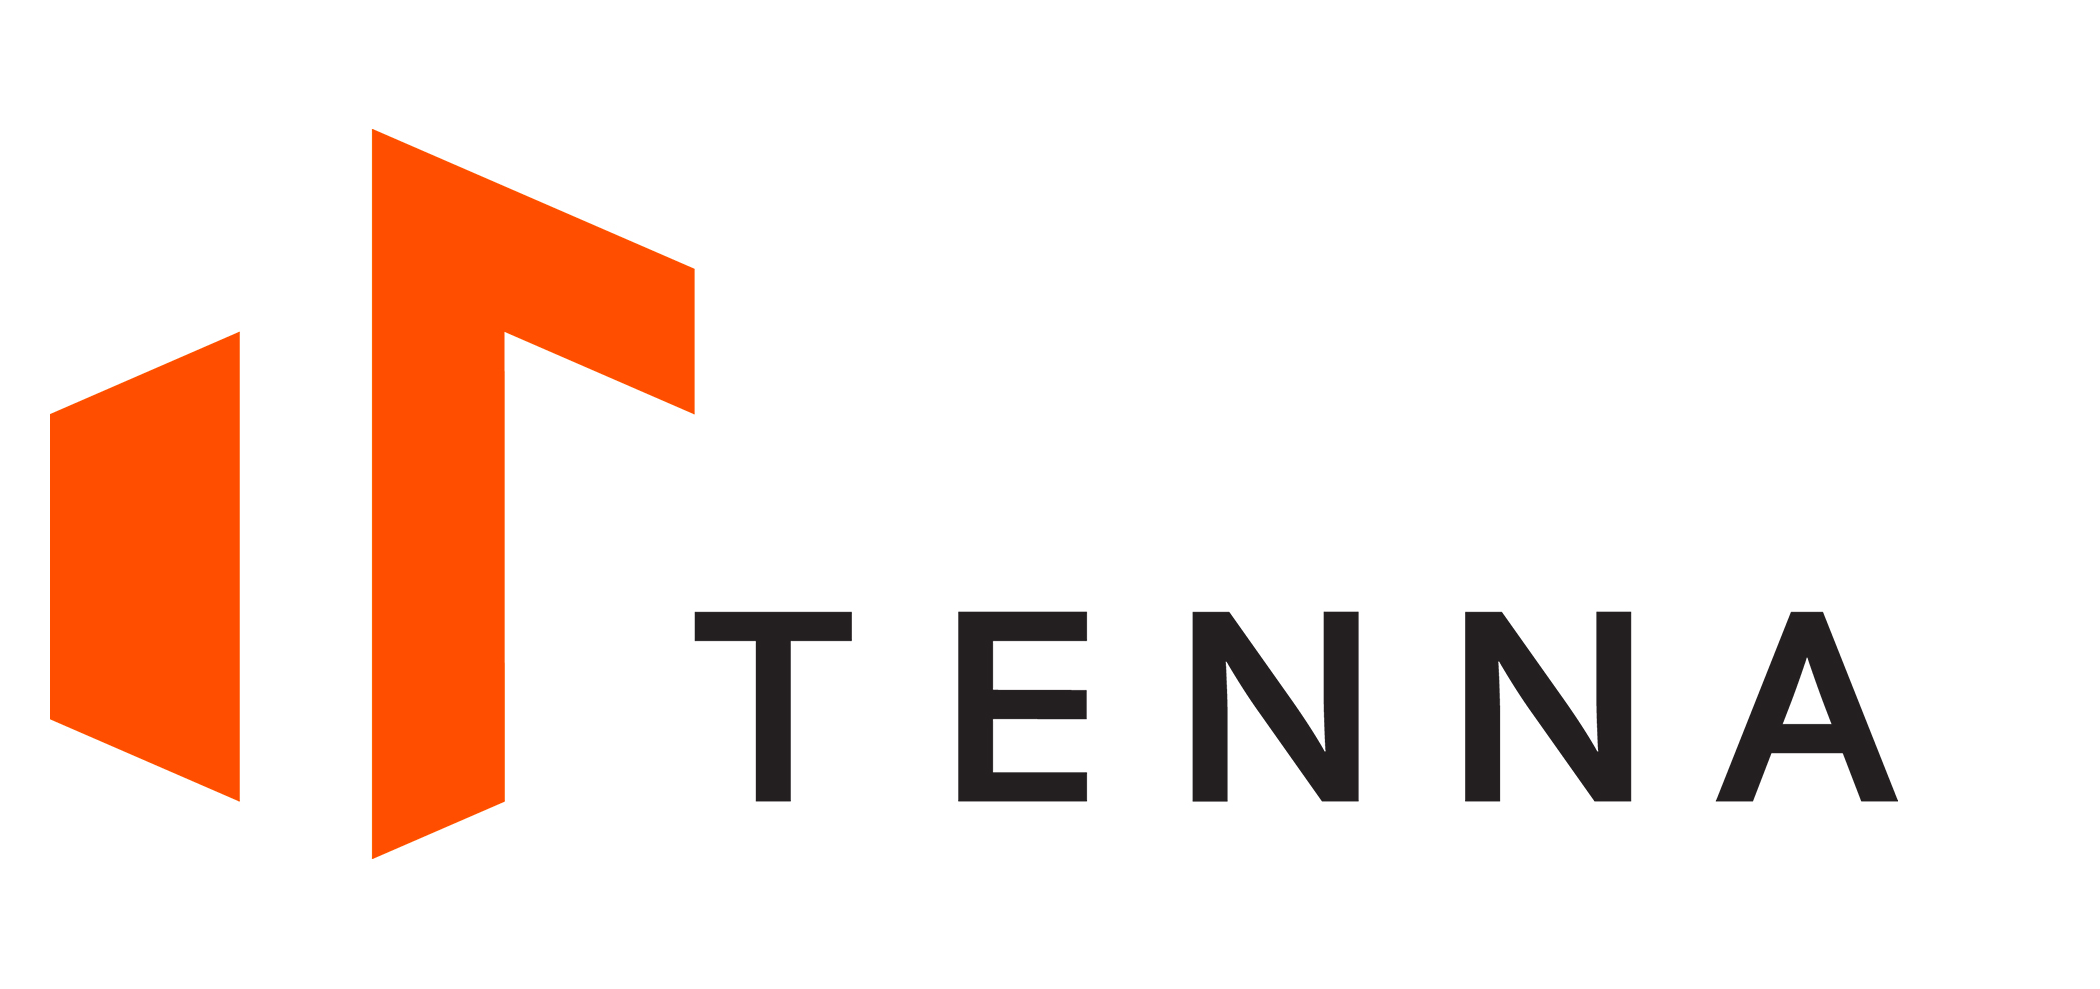 Tenna Announces Enhanced Platform and App for Construction Industry